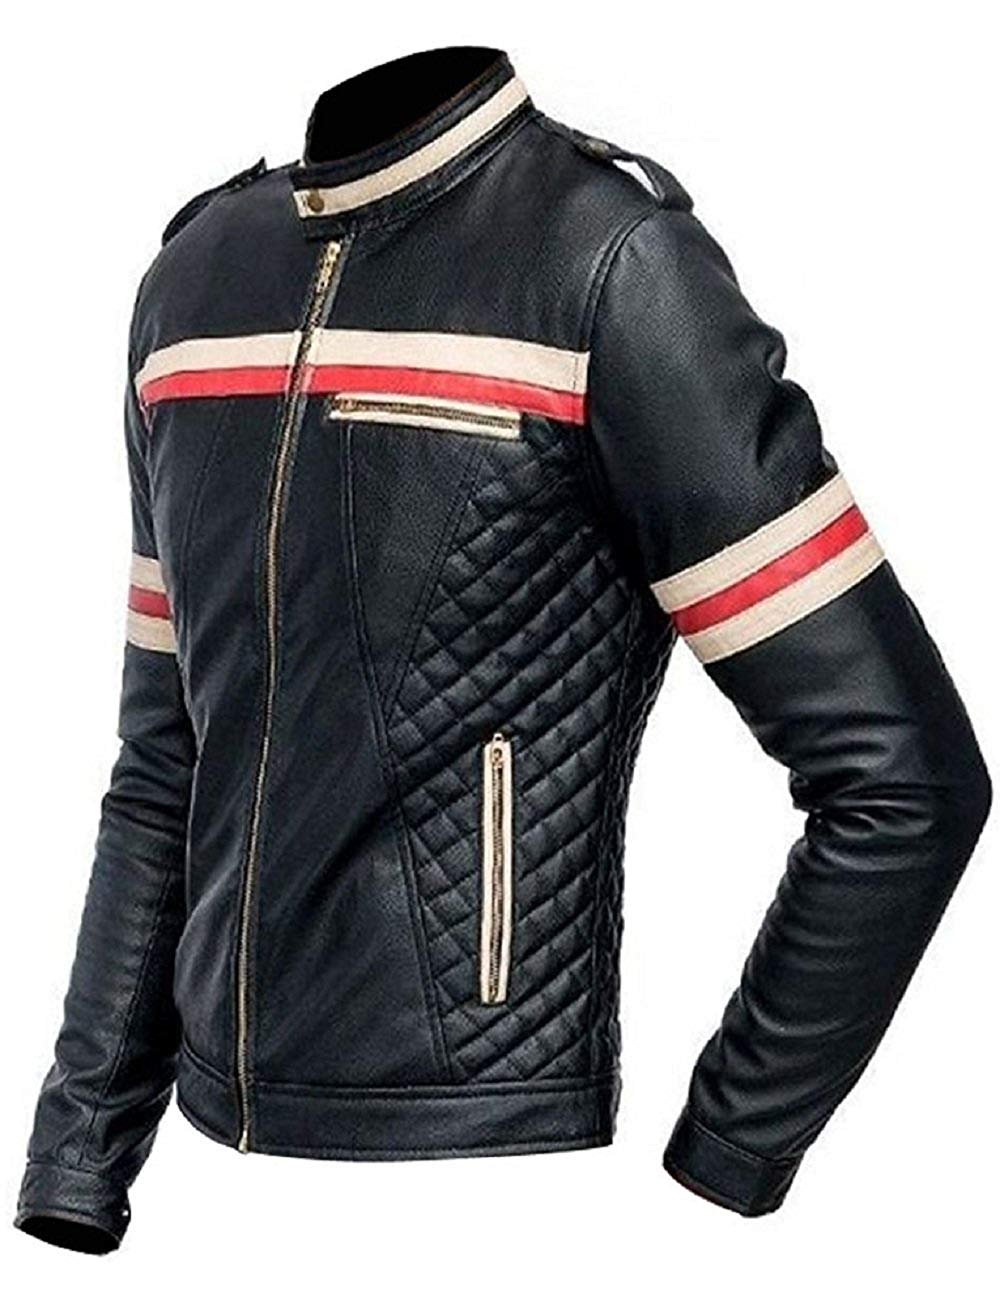 MenBiker Style Motorcycle Genuine Leather Jacket Black with Red and White Stripes_2